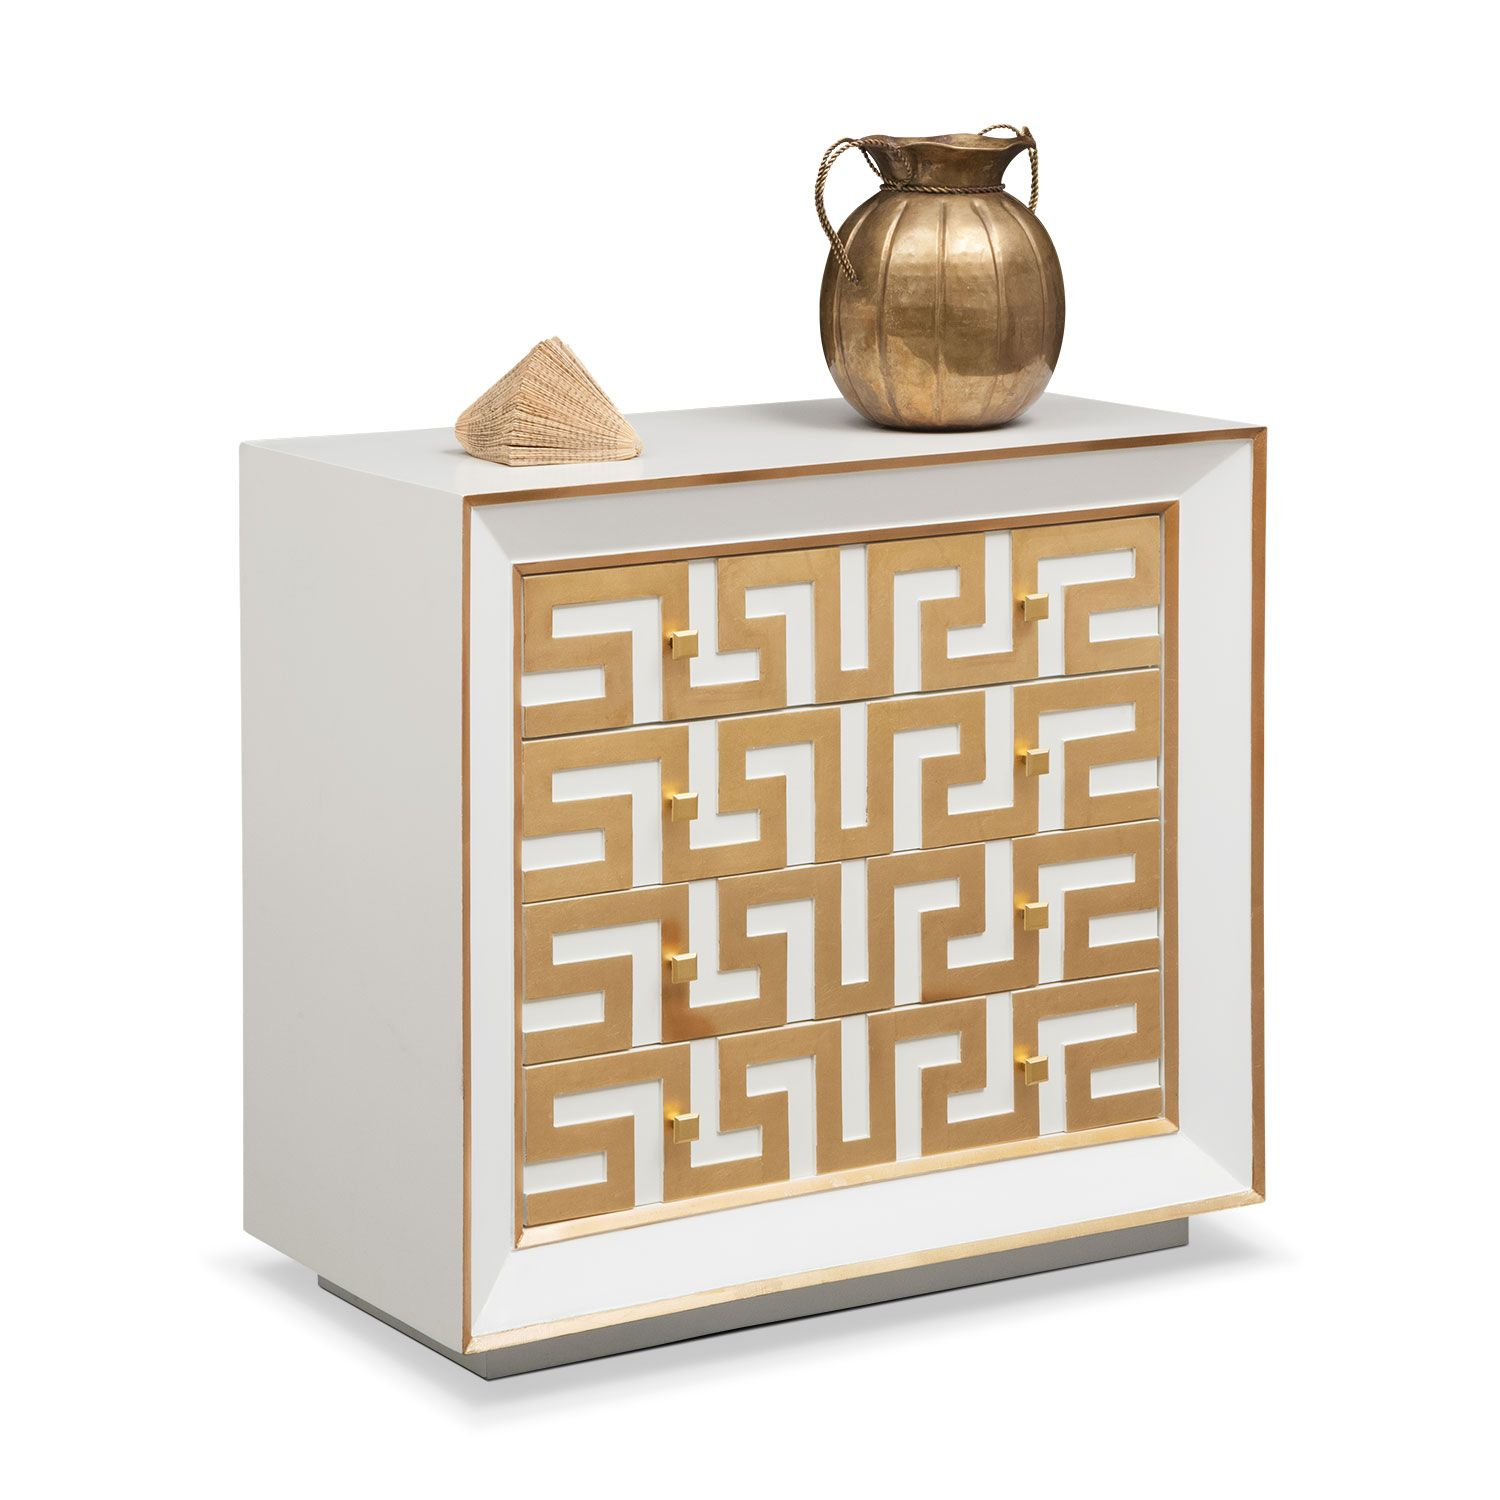 Strong Looks. Simple yet bold design elements on the Halston bachelor chest in gold generate a rich, masculine style. Its satin white picture-frame, mitered-front façade features metallic-leaf edging and a greek key motif. It's a retro look, yet the contemporary utility of this chest comes through in spades with a USB charging outlet and four drawers.